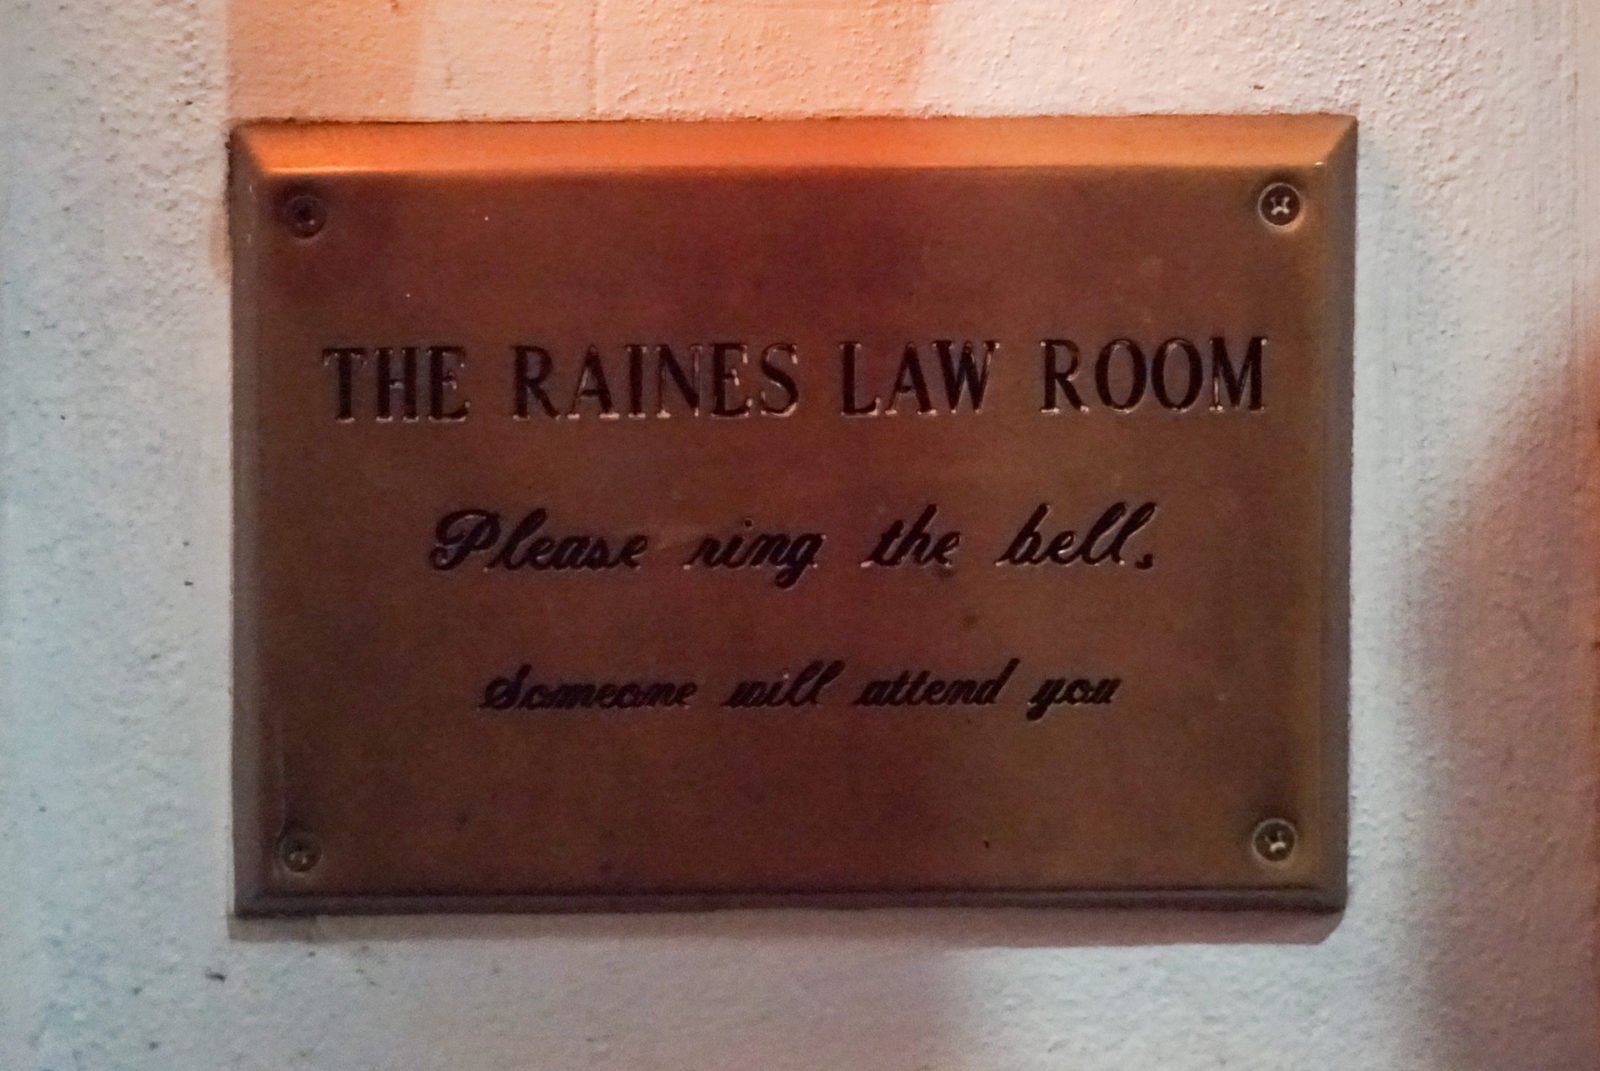 Raines Law Room New York City Secret Bar entrance sign